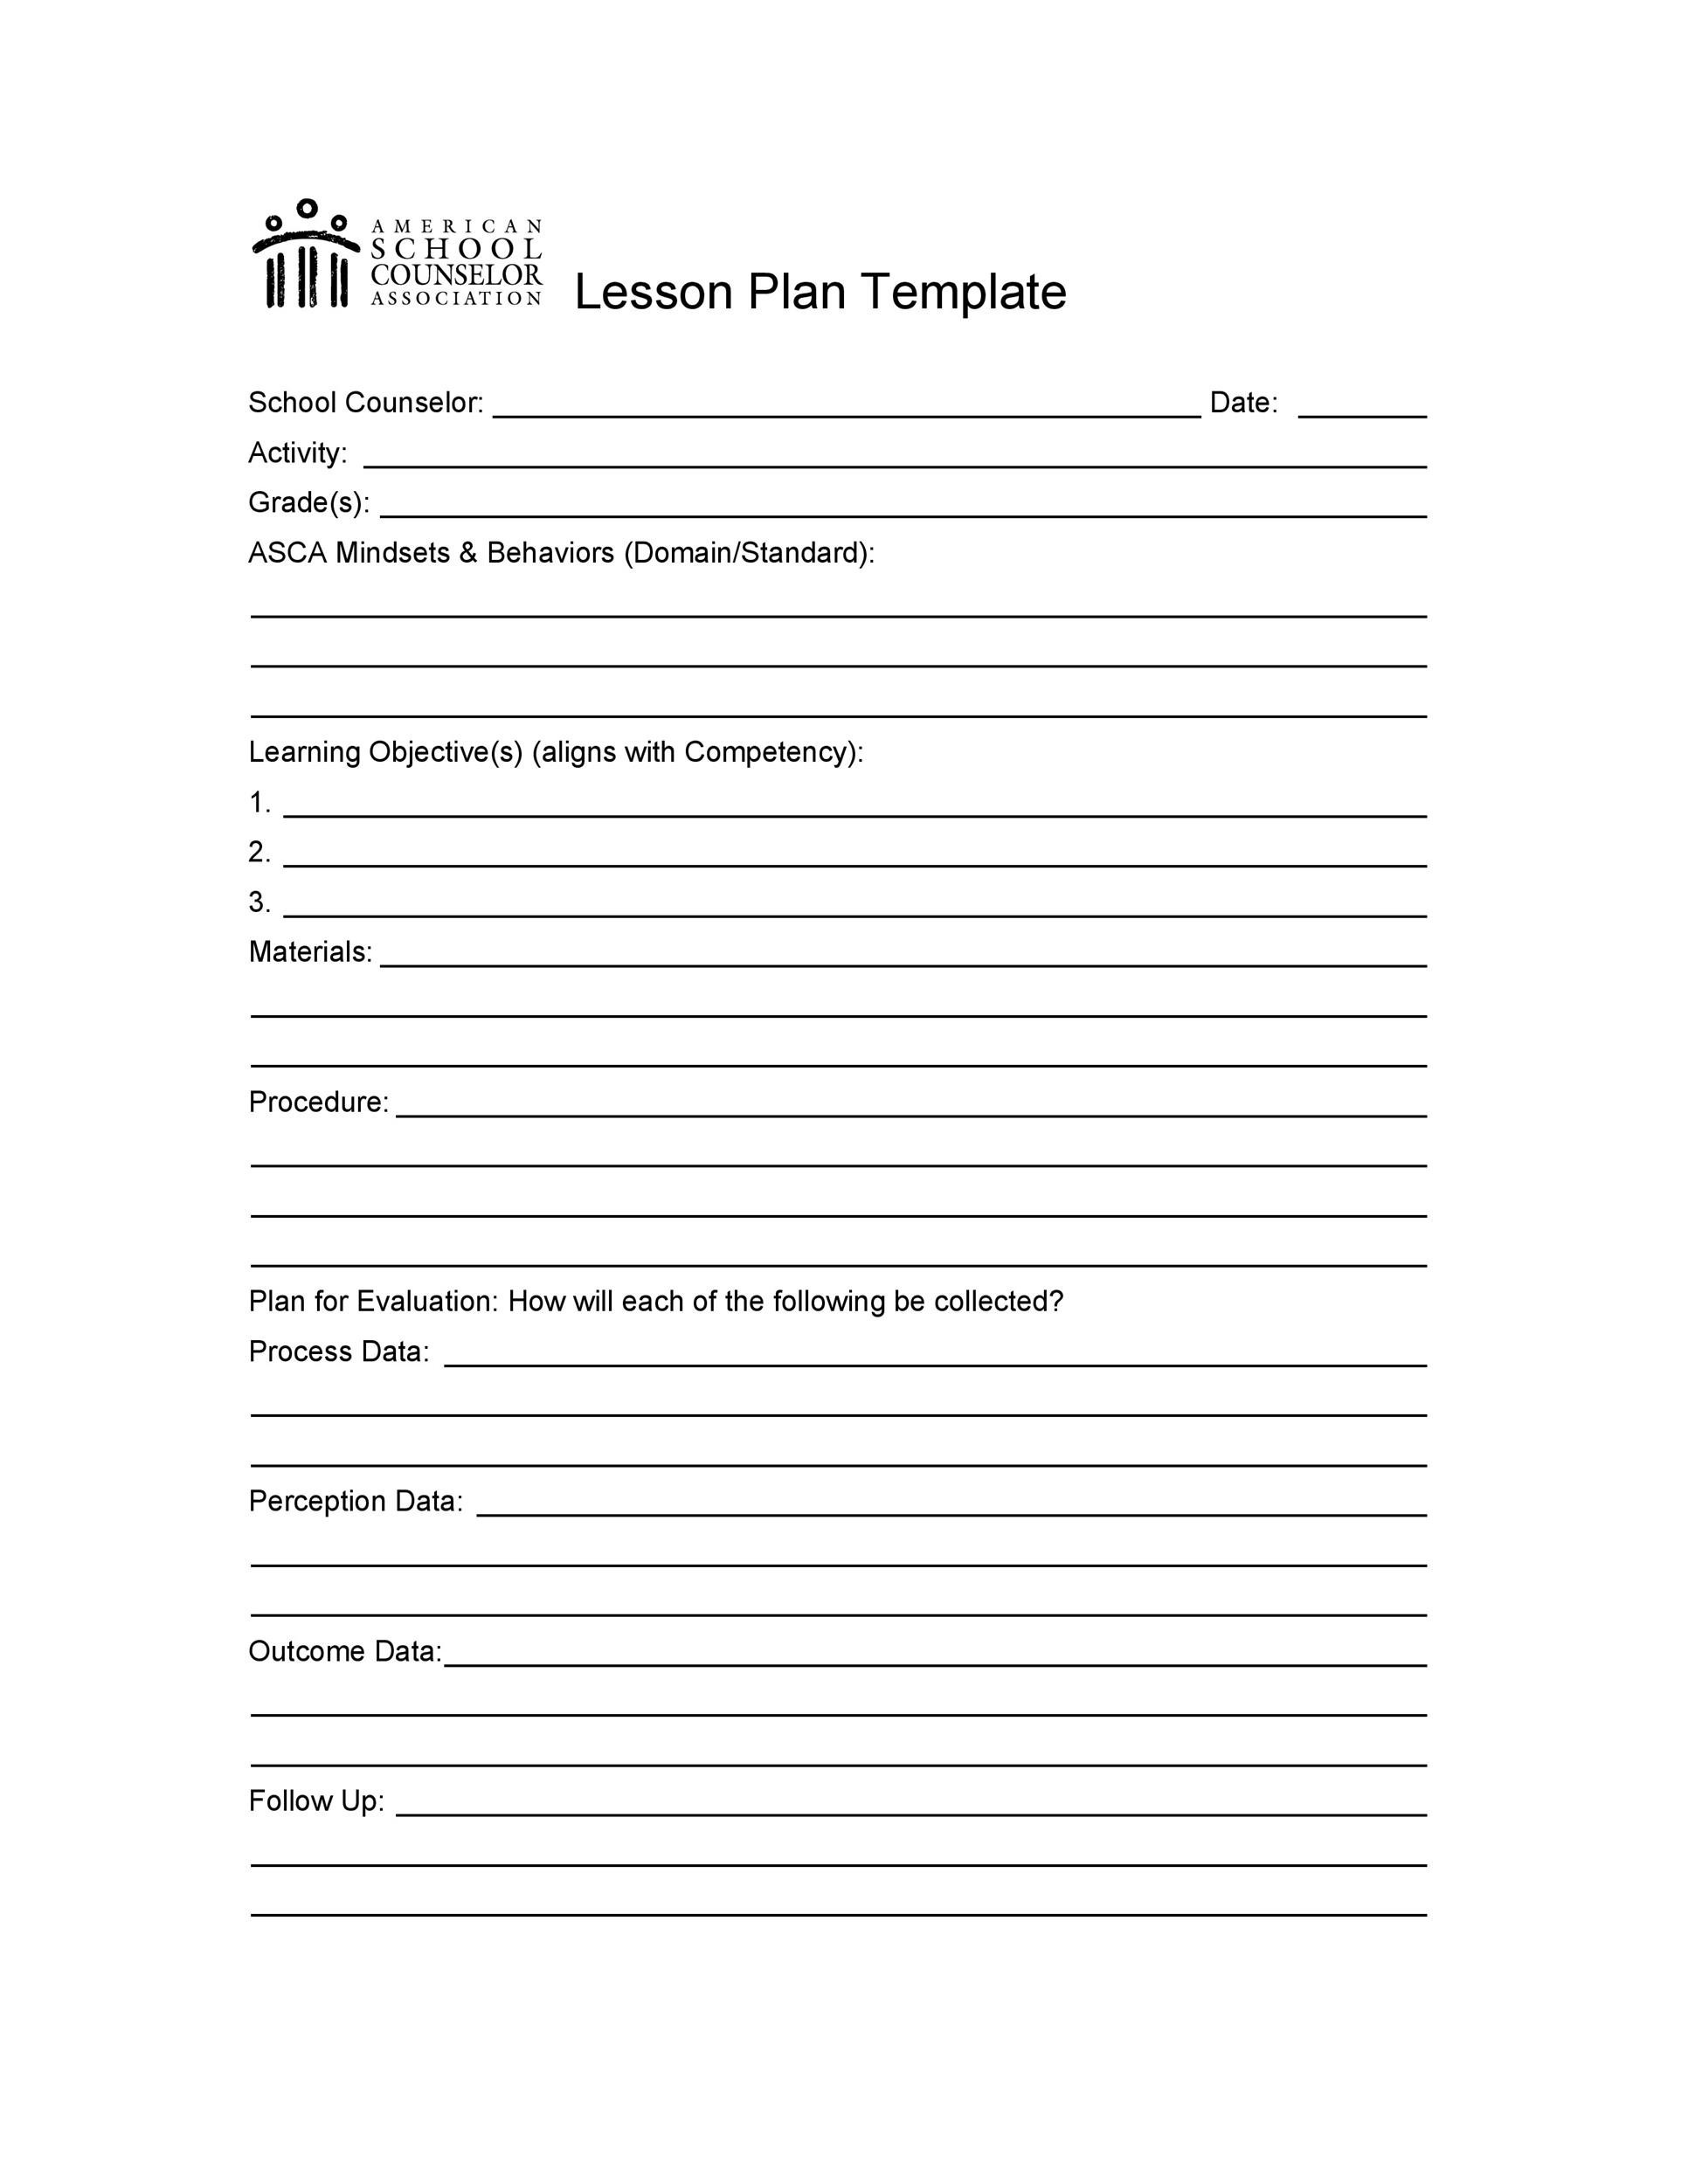 Free lesson plan template 37